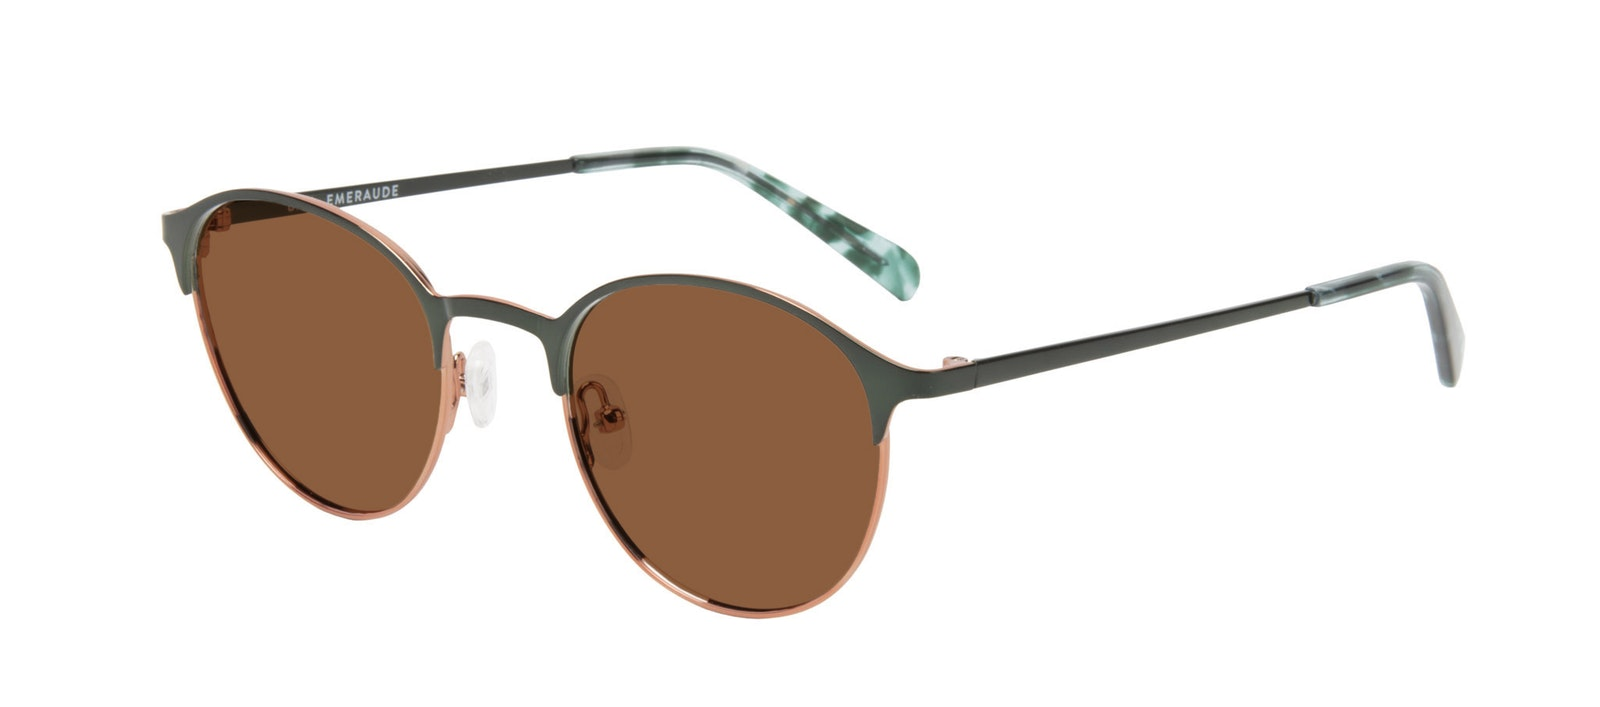 Affordable Fashion Glasses Round Sunglasses Women Bay II Emeraude Tilt